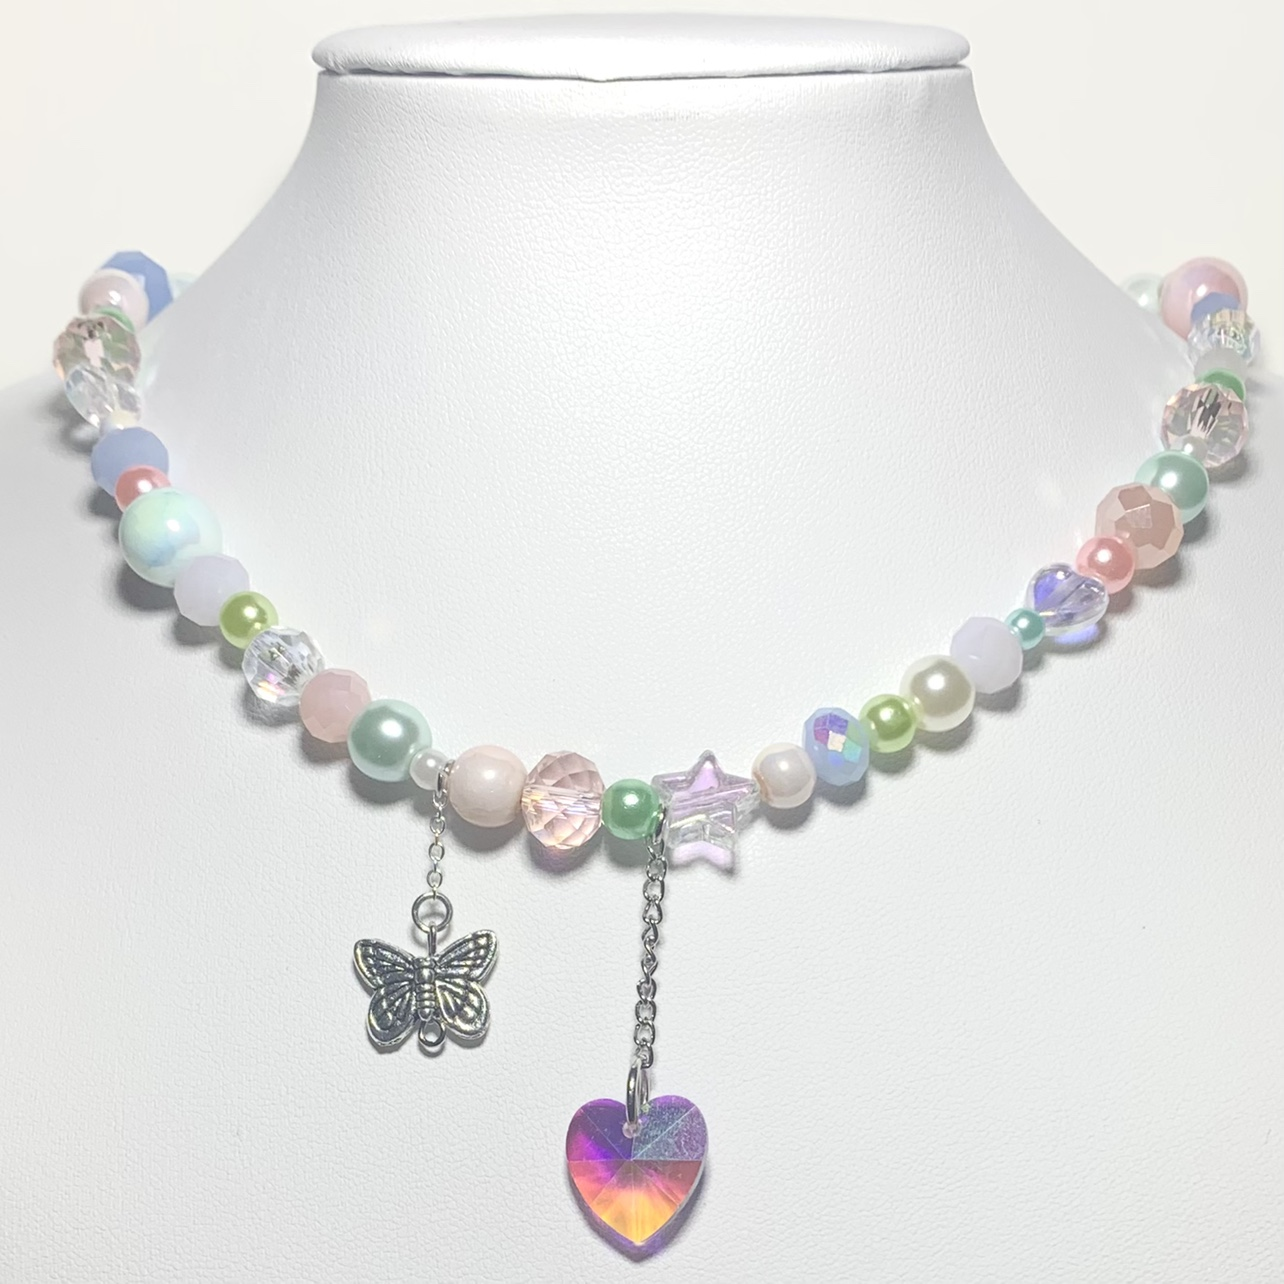 Product Image 1 - ☆*:.。[the maia pearl necklace]。.:*☆ *the colors